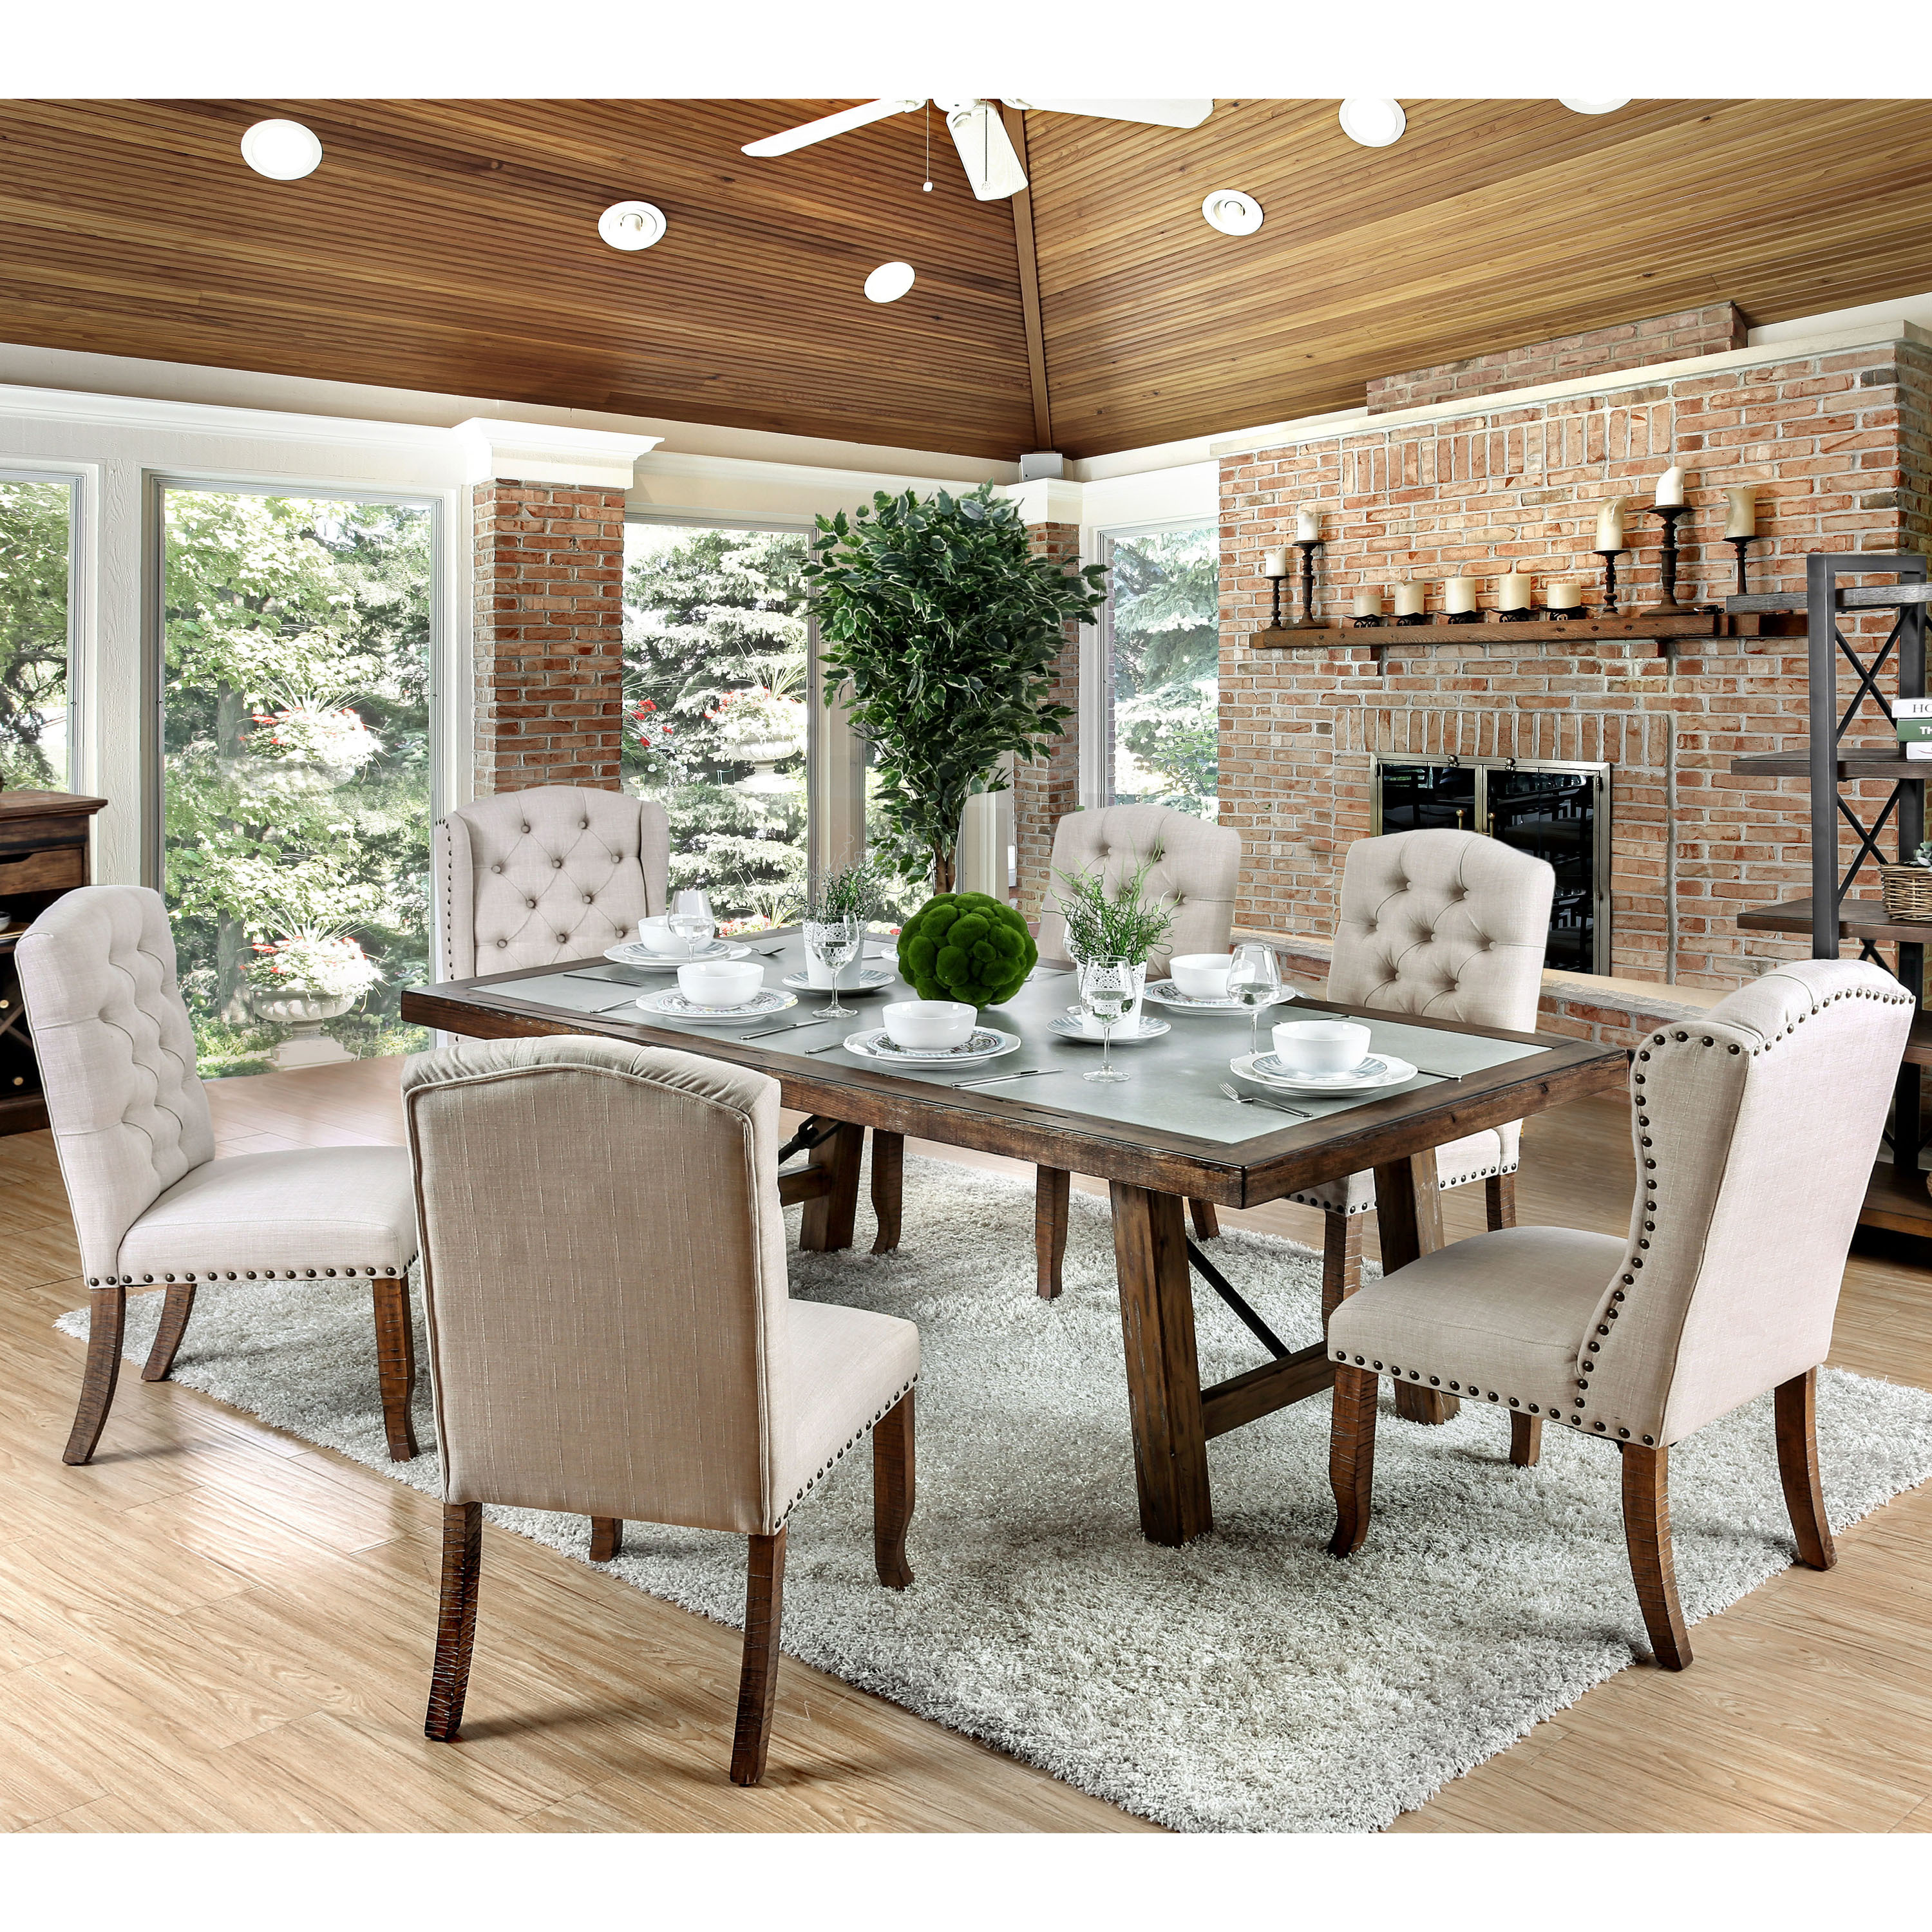 furniture of america dining sets. Furniture Of America Matheson Rustic Tufted Dining Chairs (Set 2) - Free Shipping Today Overstock 26120439 Sets